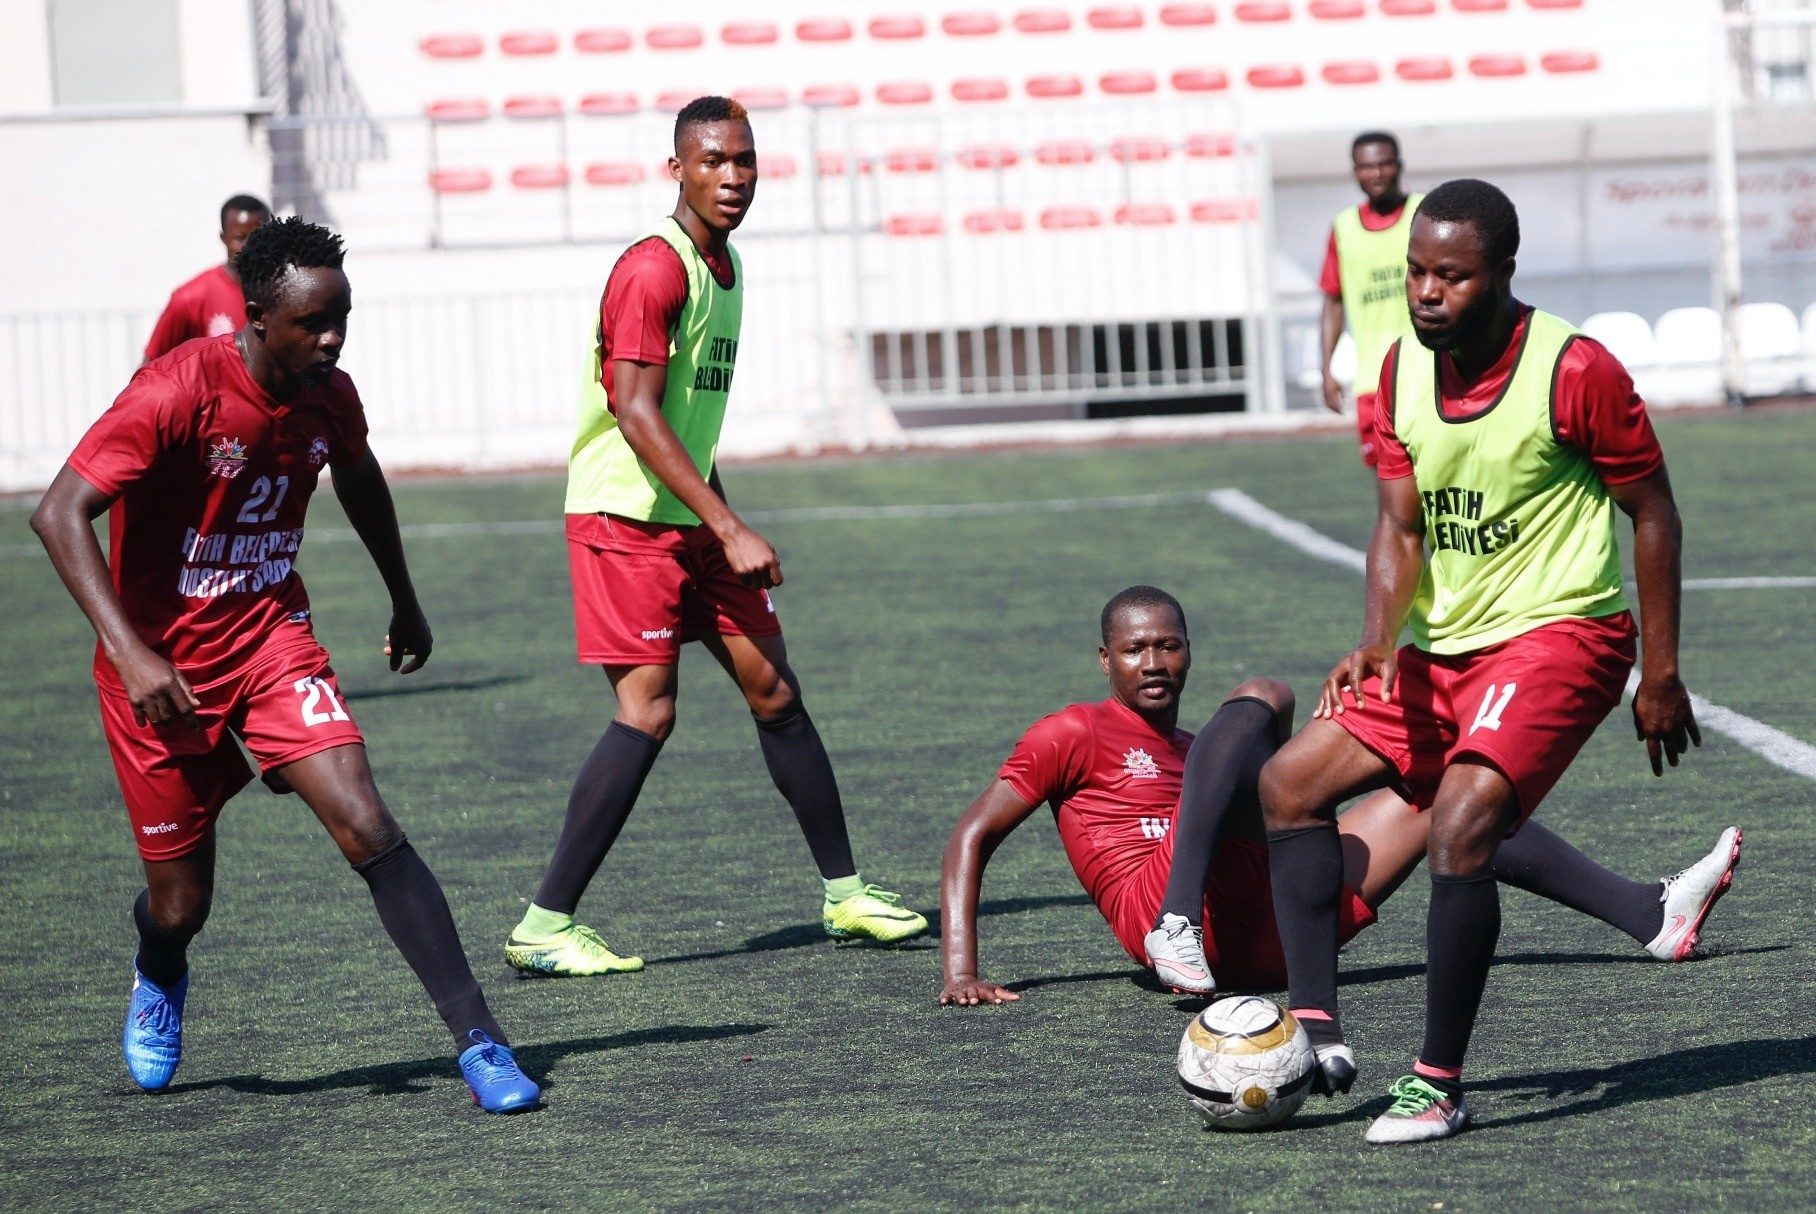 Tricked by human traffickers and brought to Turkey with dreams of playing for Turkeyu2019s top football clubs, these African footballers try to get their attention with a team they formed under the auspices of Fatih Municipality.